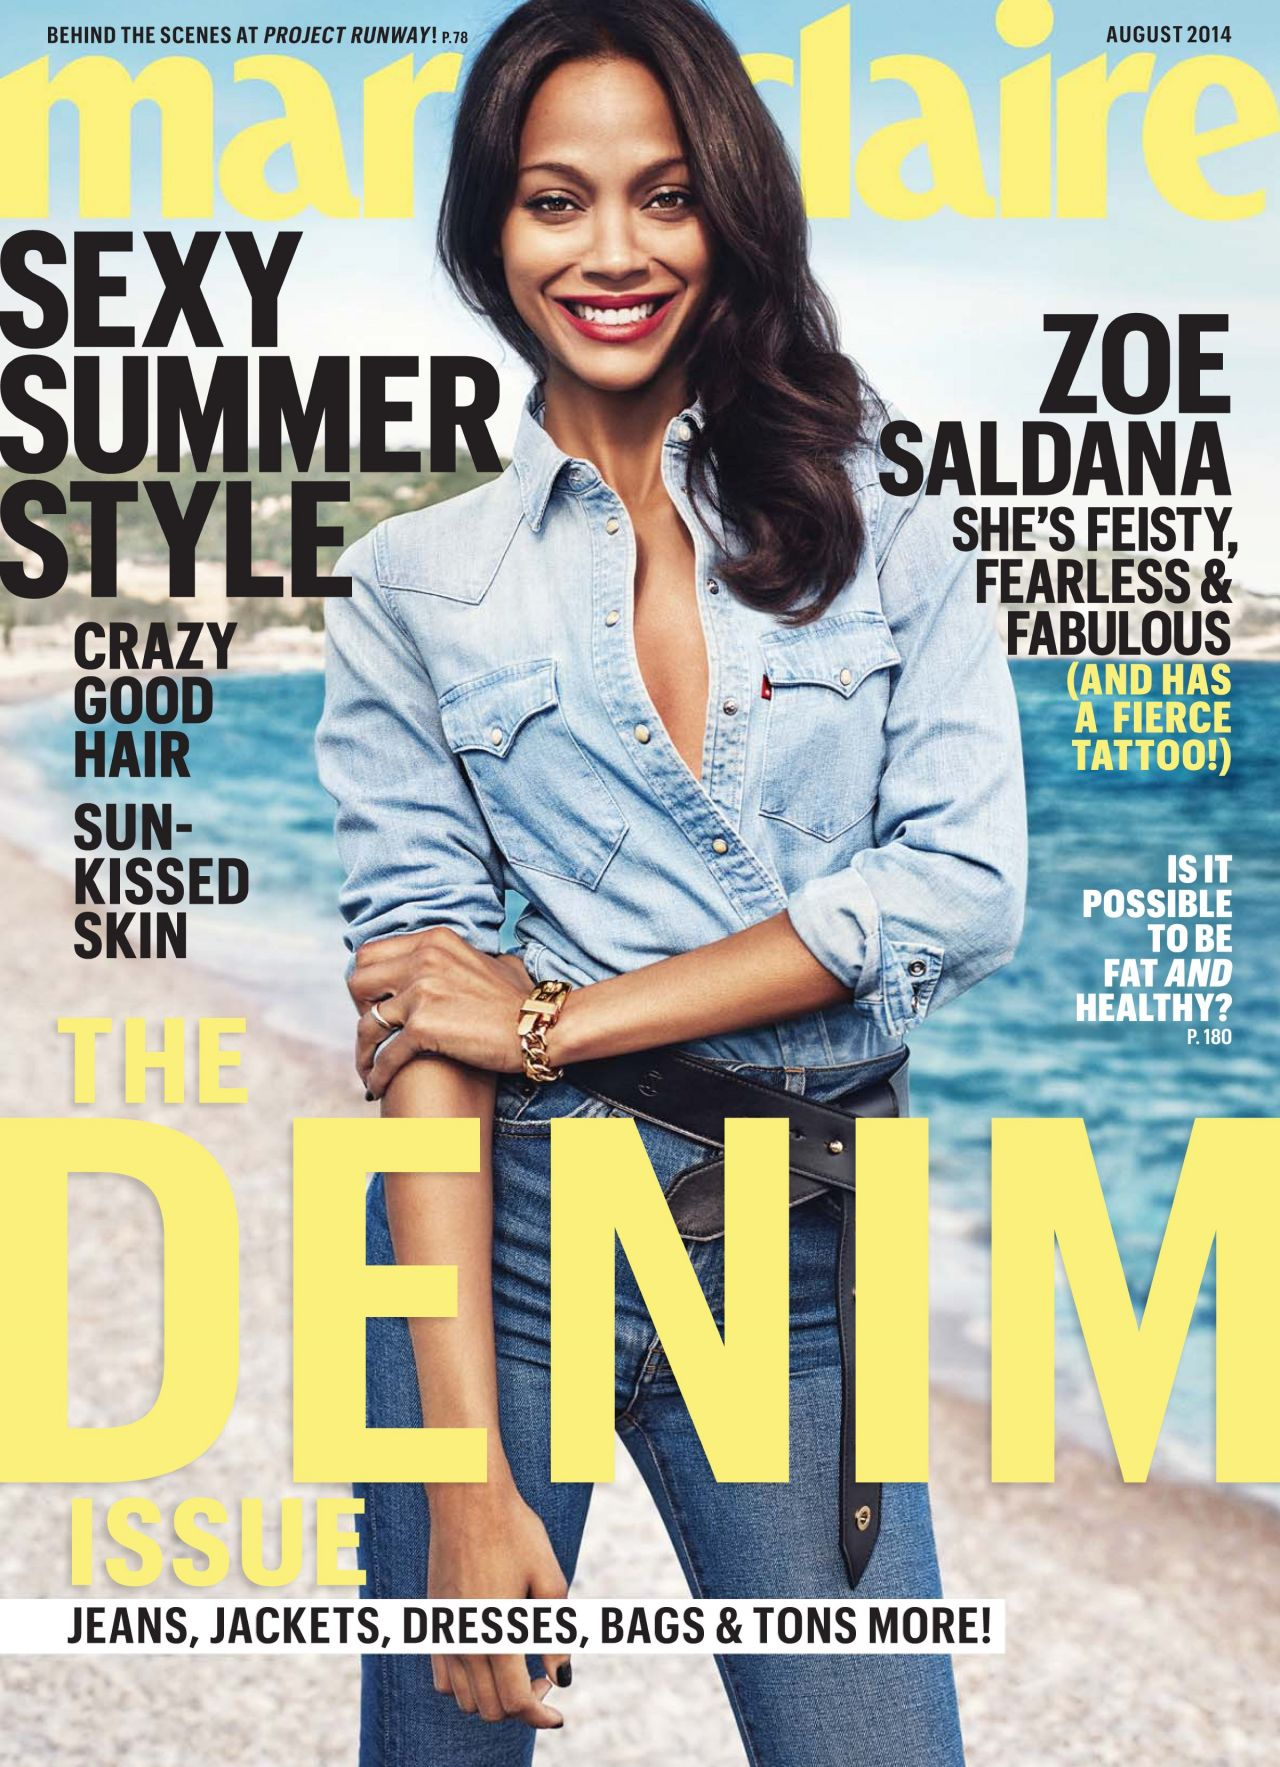 Zoe Saldana - Marie Claire Magazine - August 2014 Issue